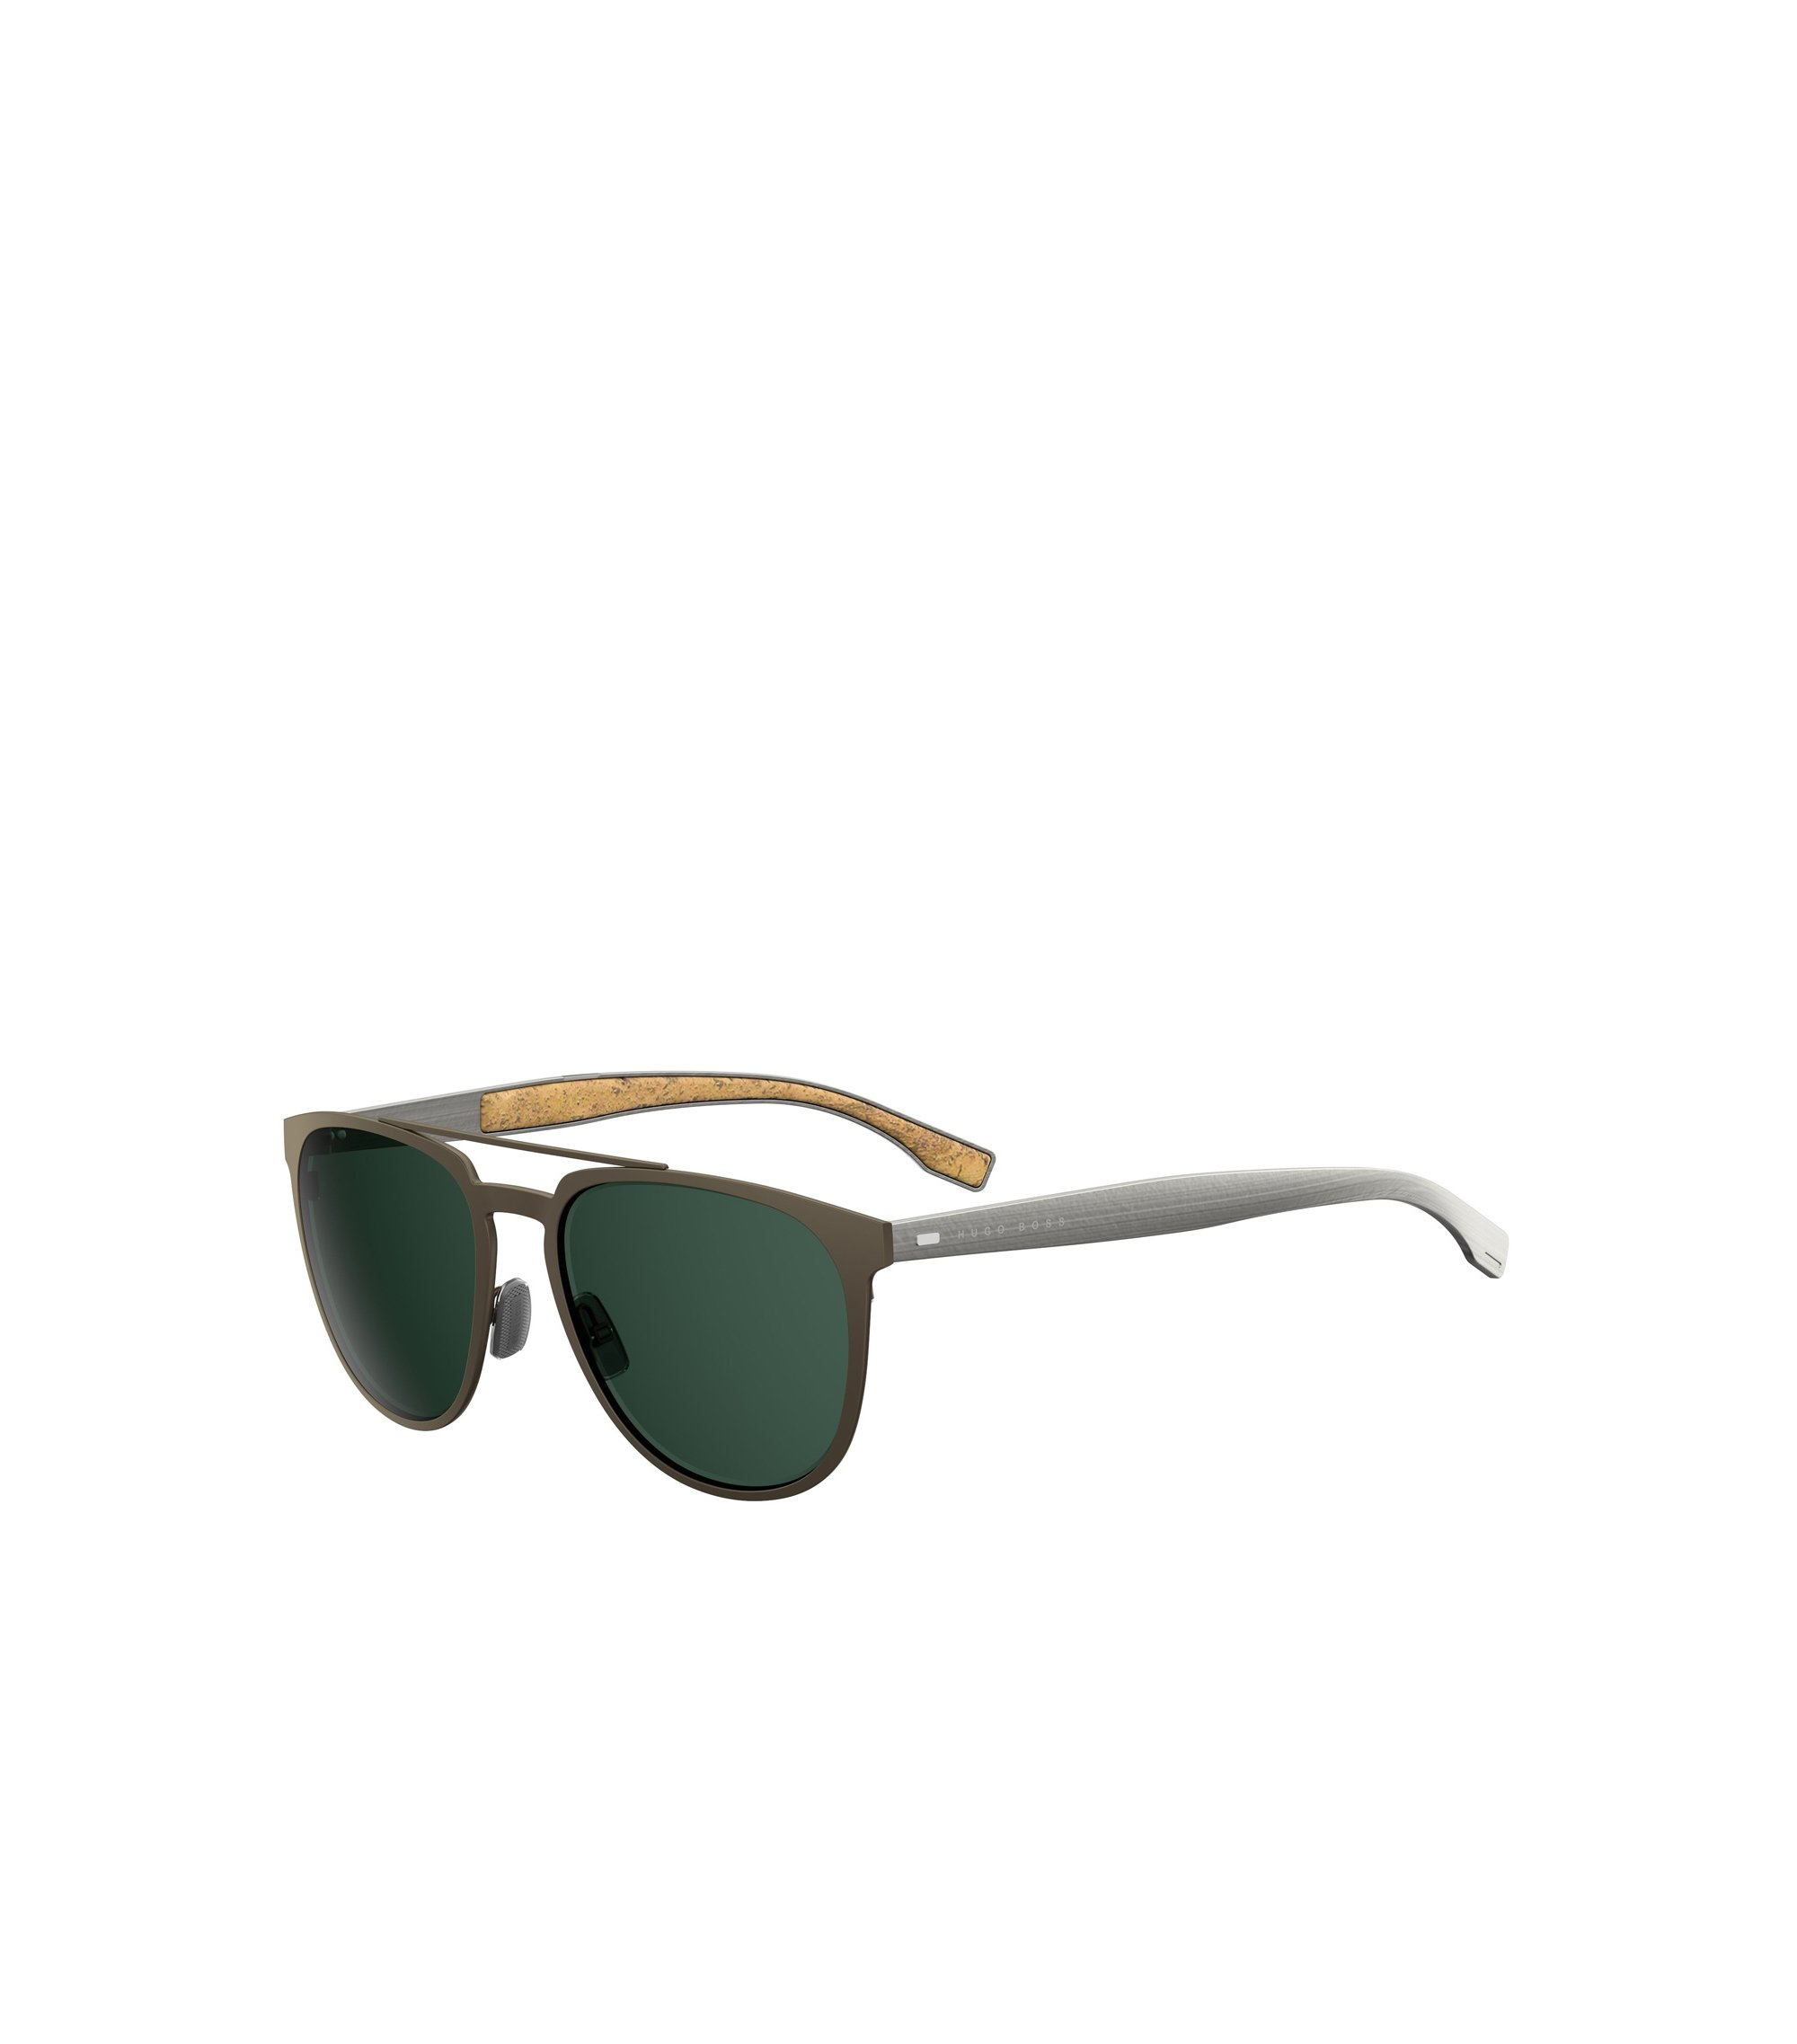 Dark Brown Round Metal Sunglasses | BOSS 0882S, Assorted-Pre-Pack